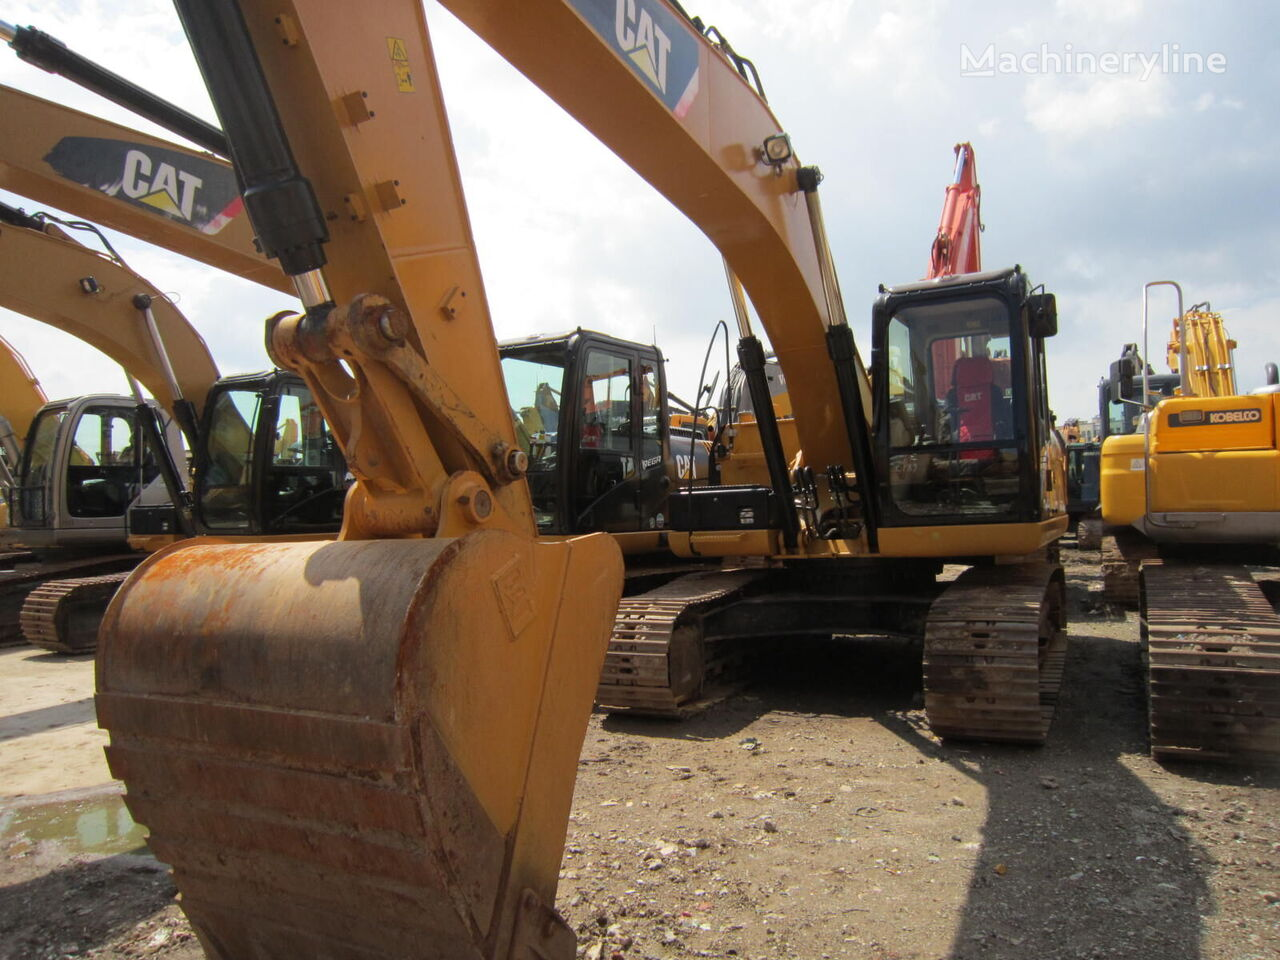 CATERPILLAR 320D tracked excavator